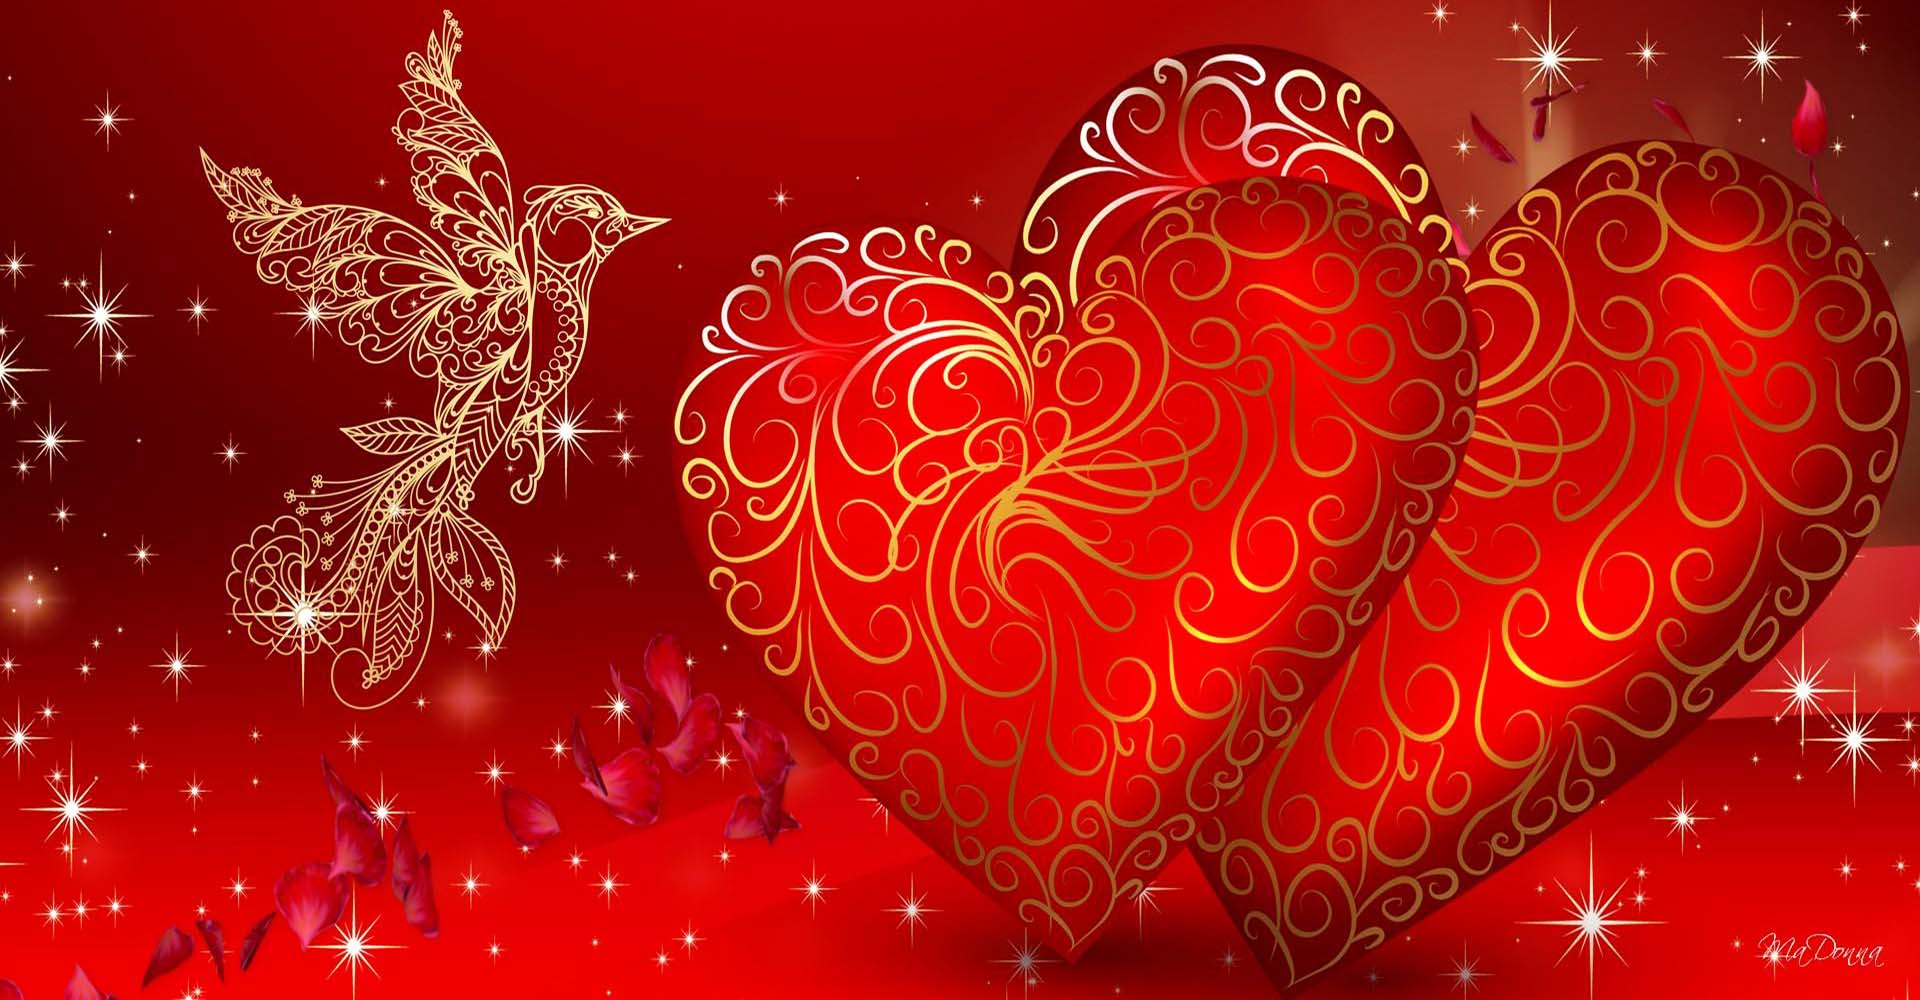 Love Wallpaper Full Hd Image : Love Heart Wallpapers 2016 - Wallpaper cave